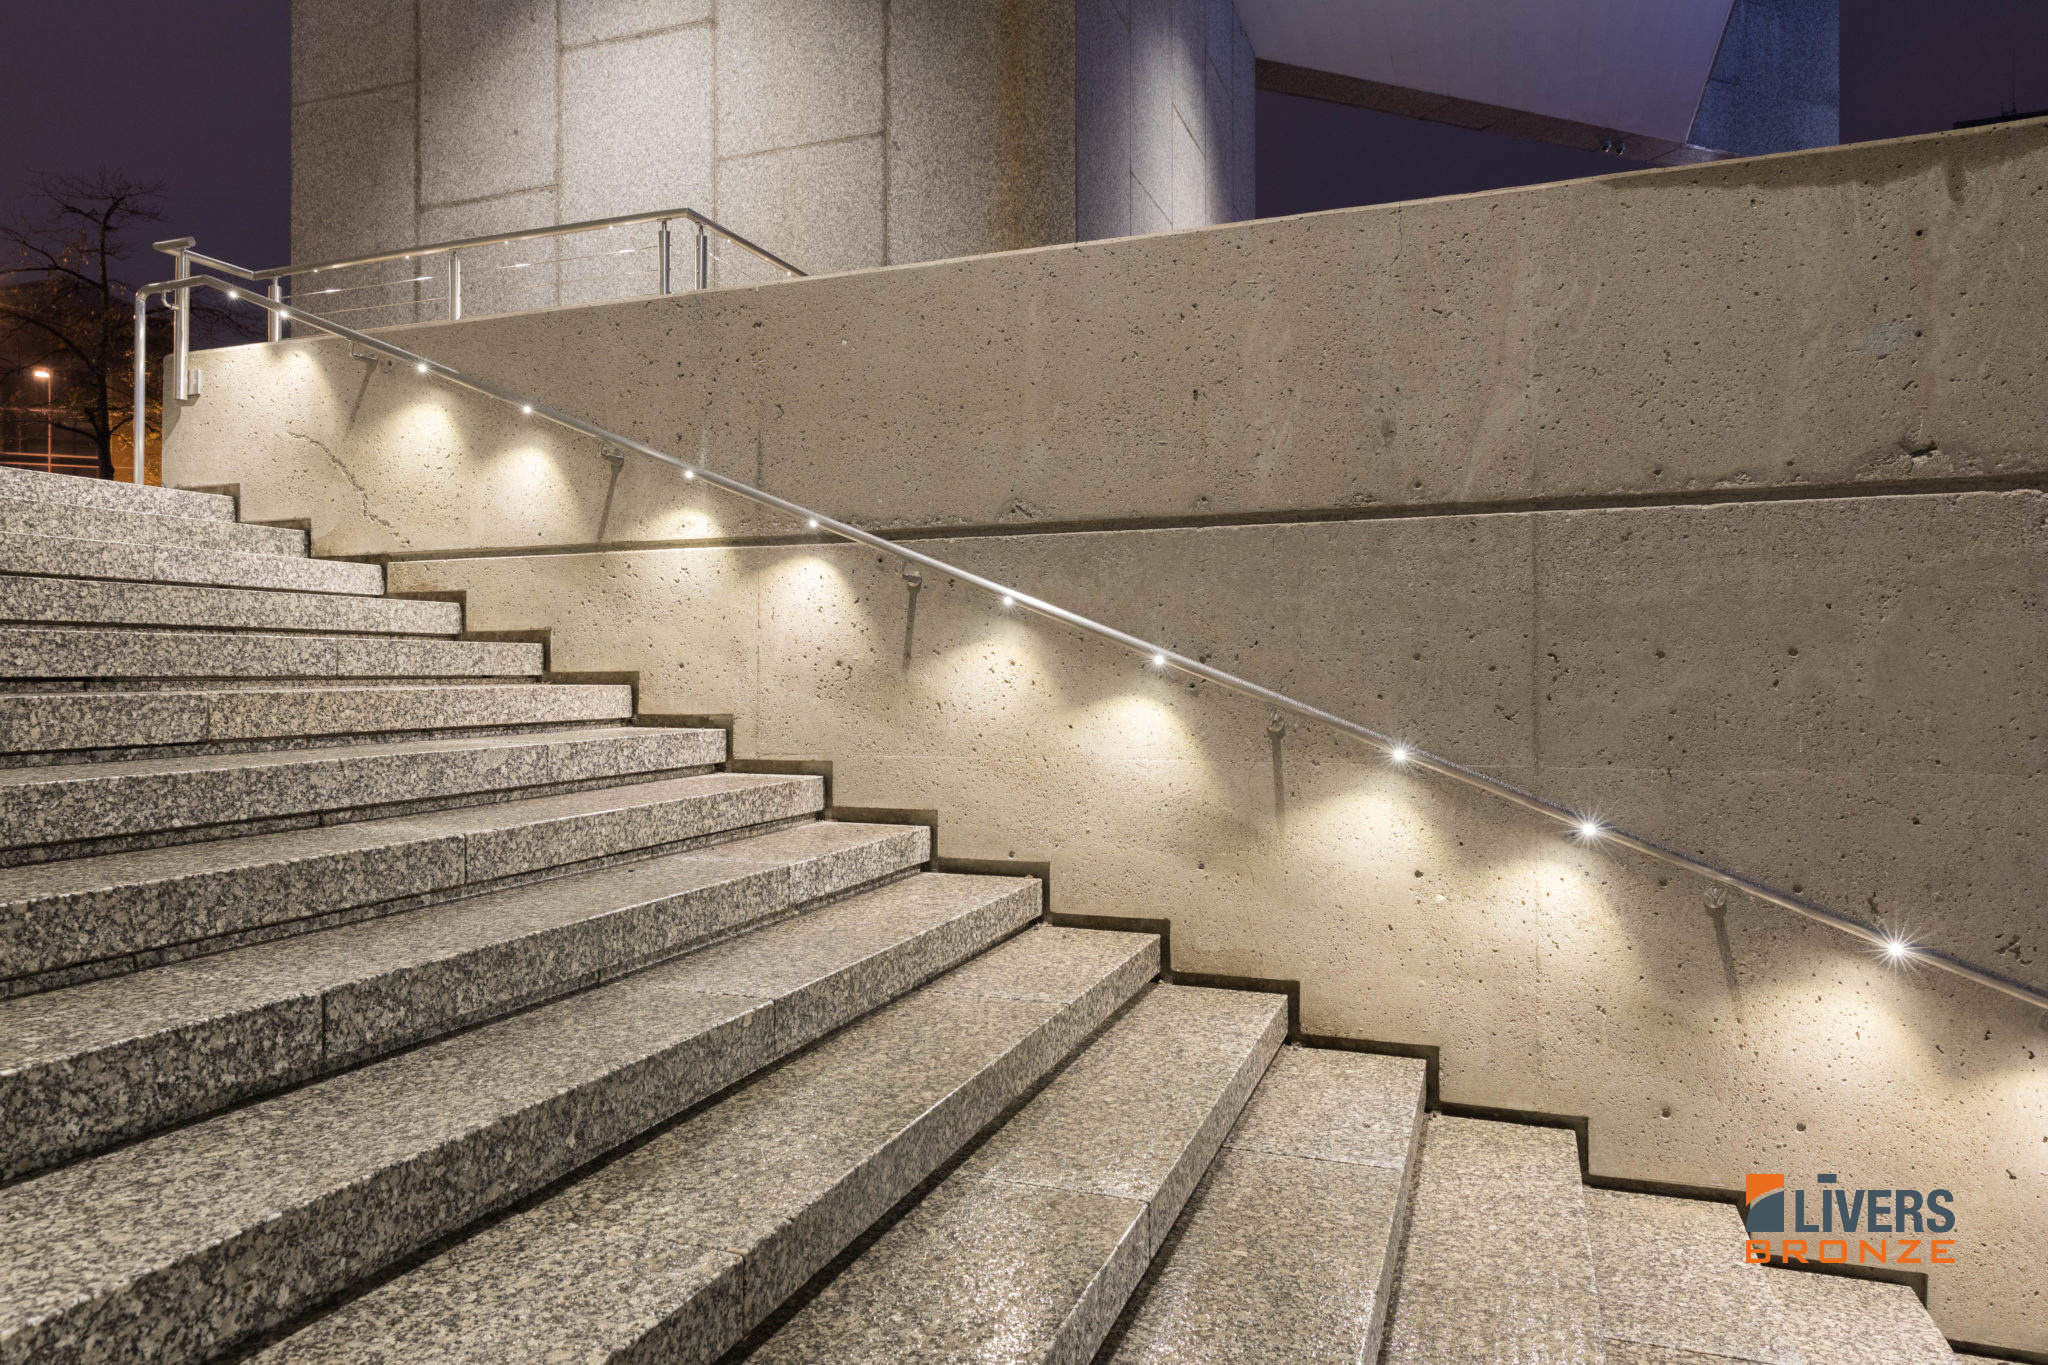 Led Handrail Materials Livers Bronze Railing Systems